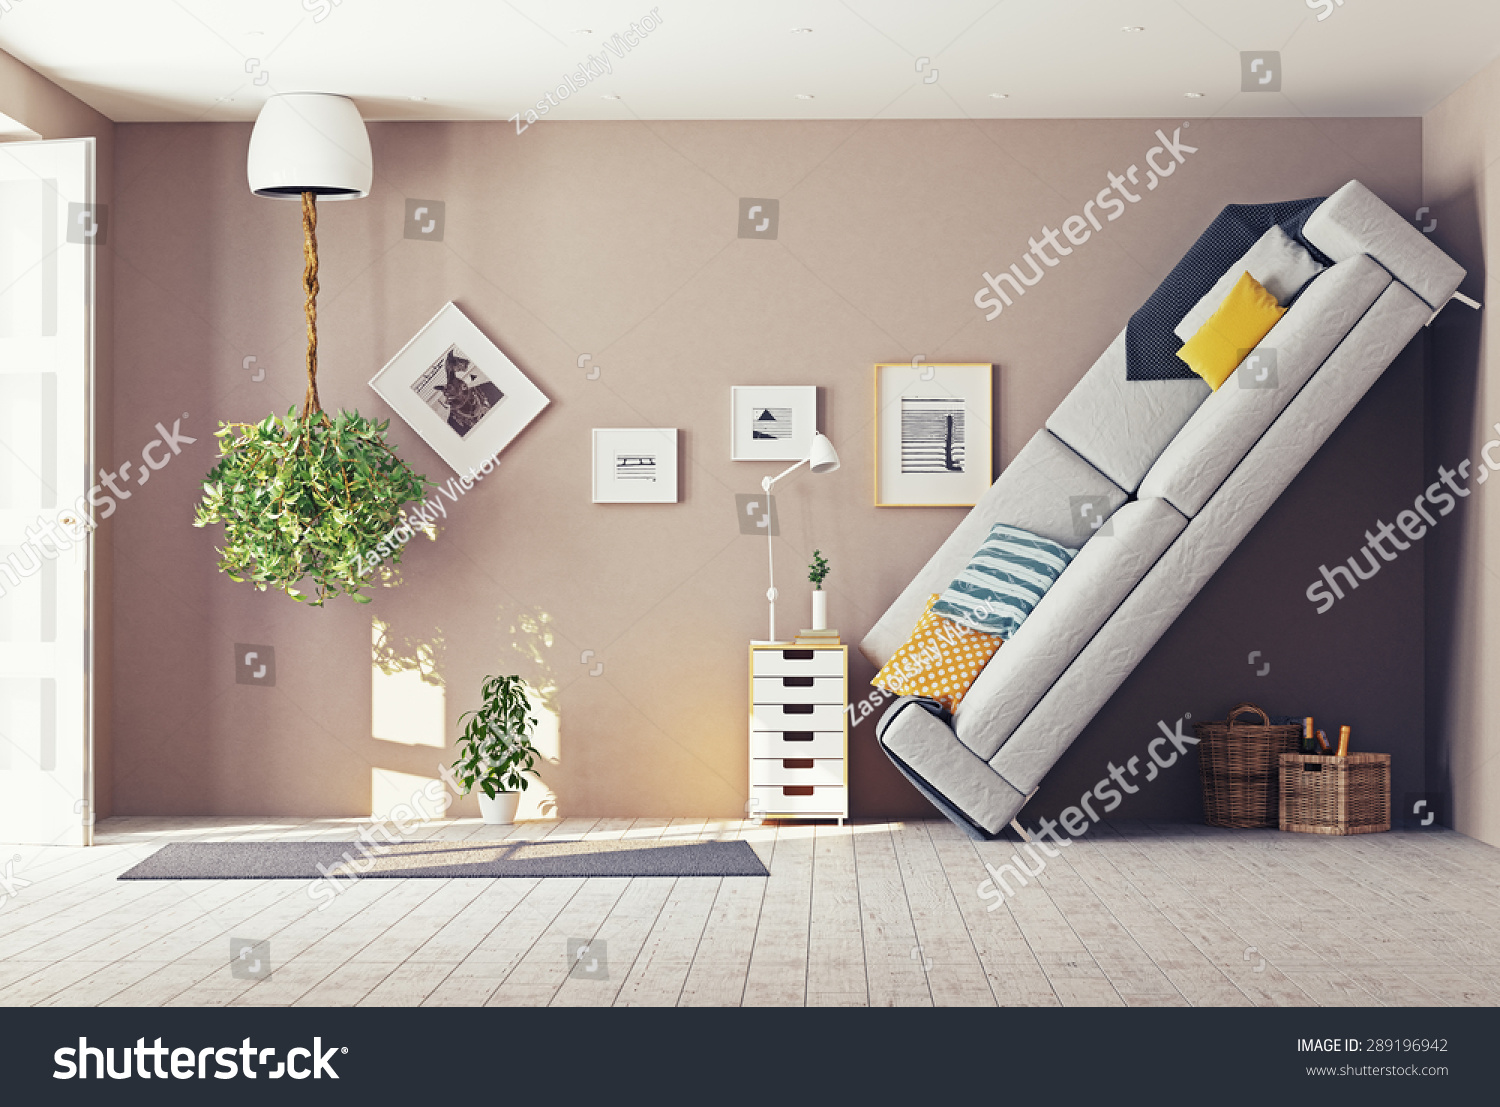 Strange living room interior 3d design stock illustration for Apartment design concept